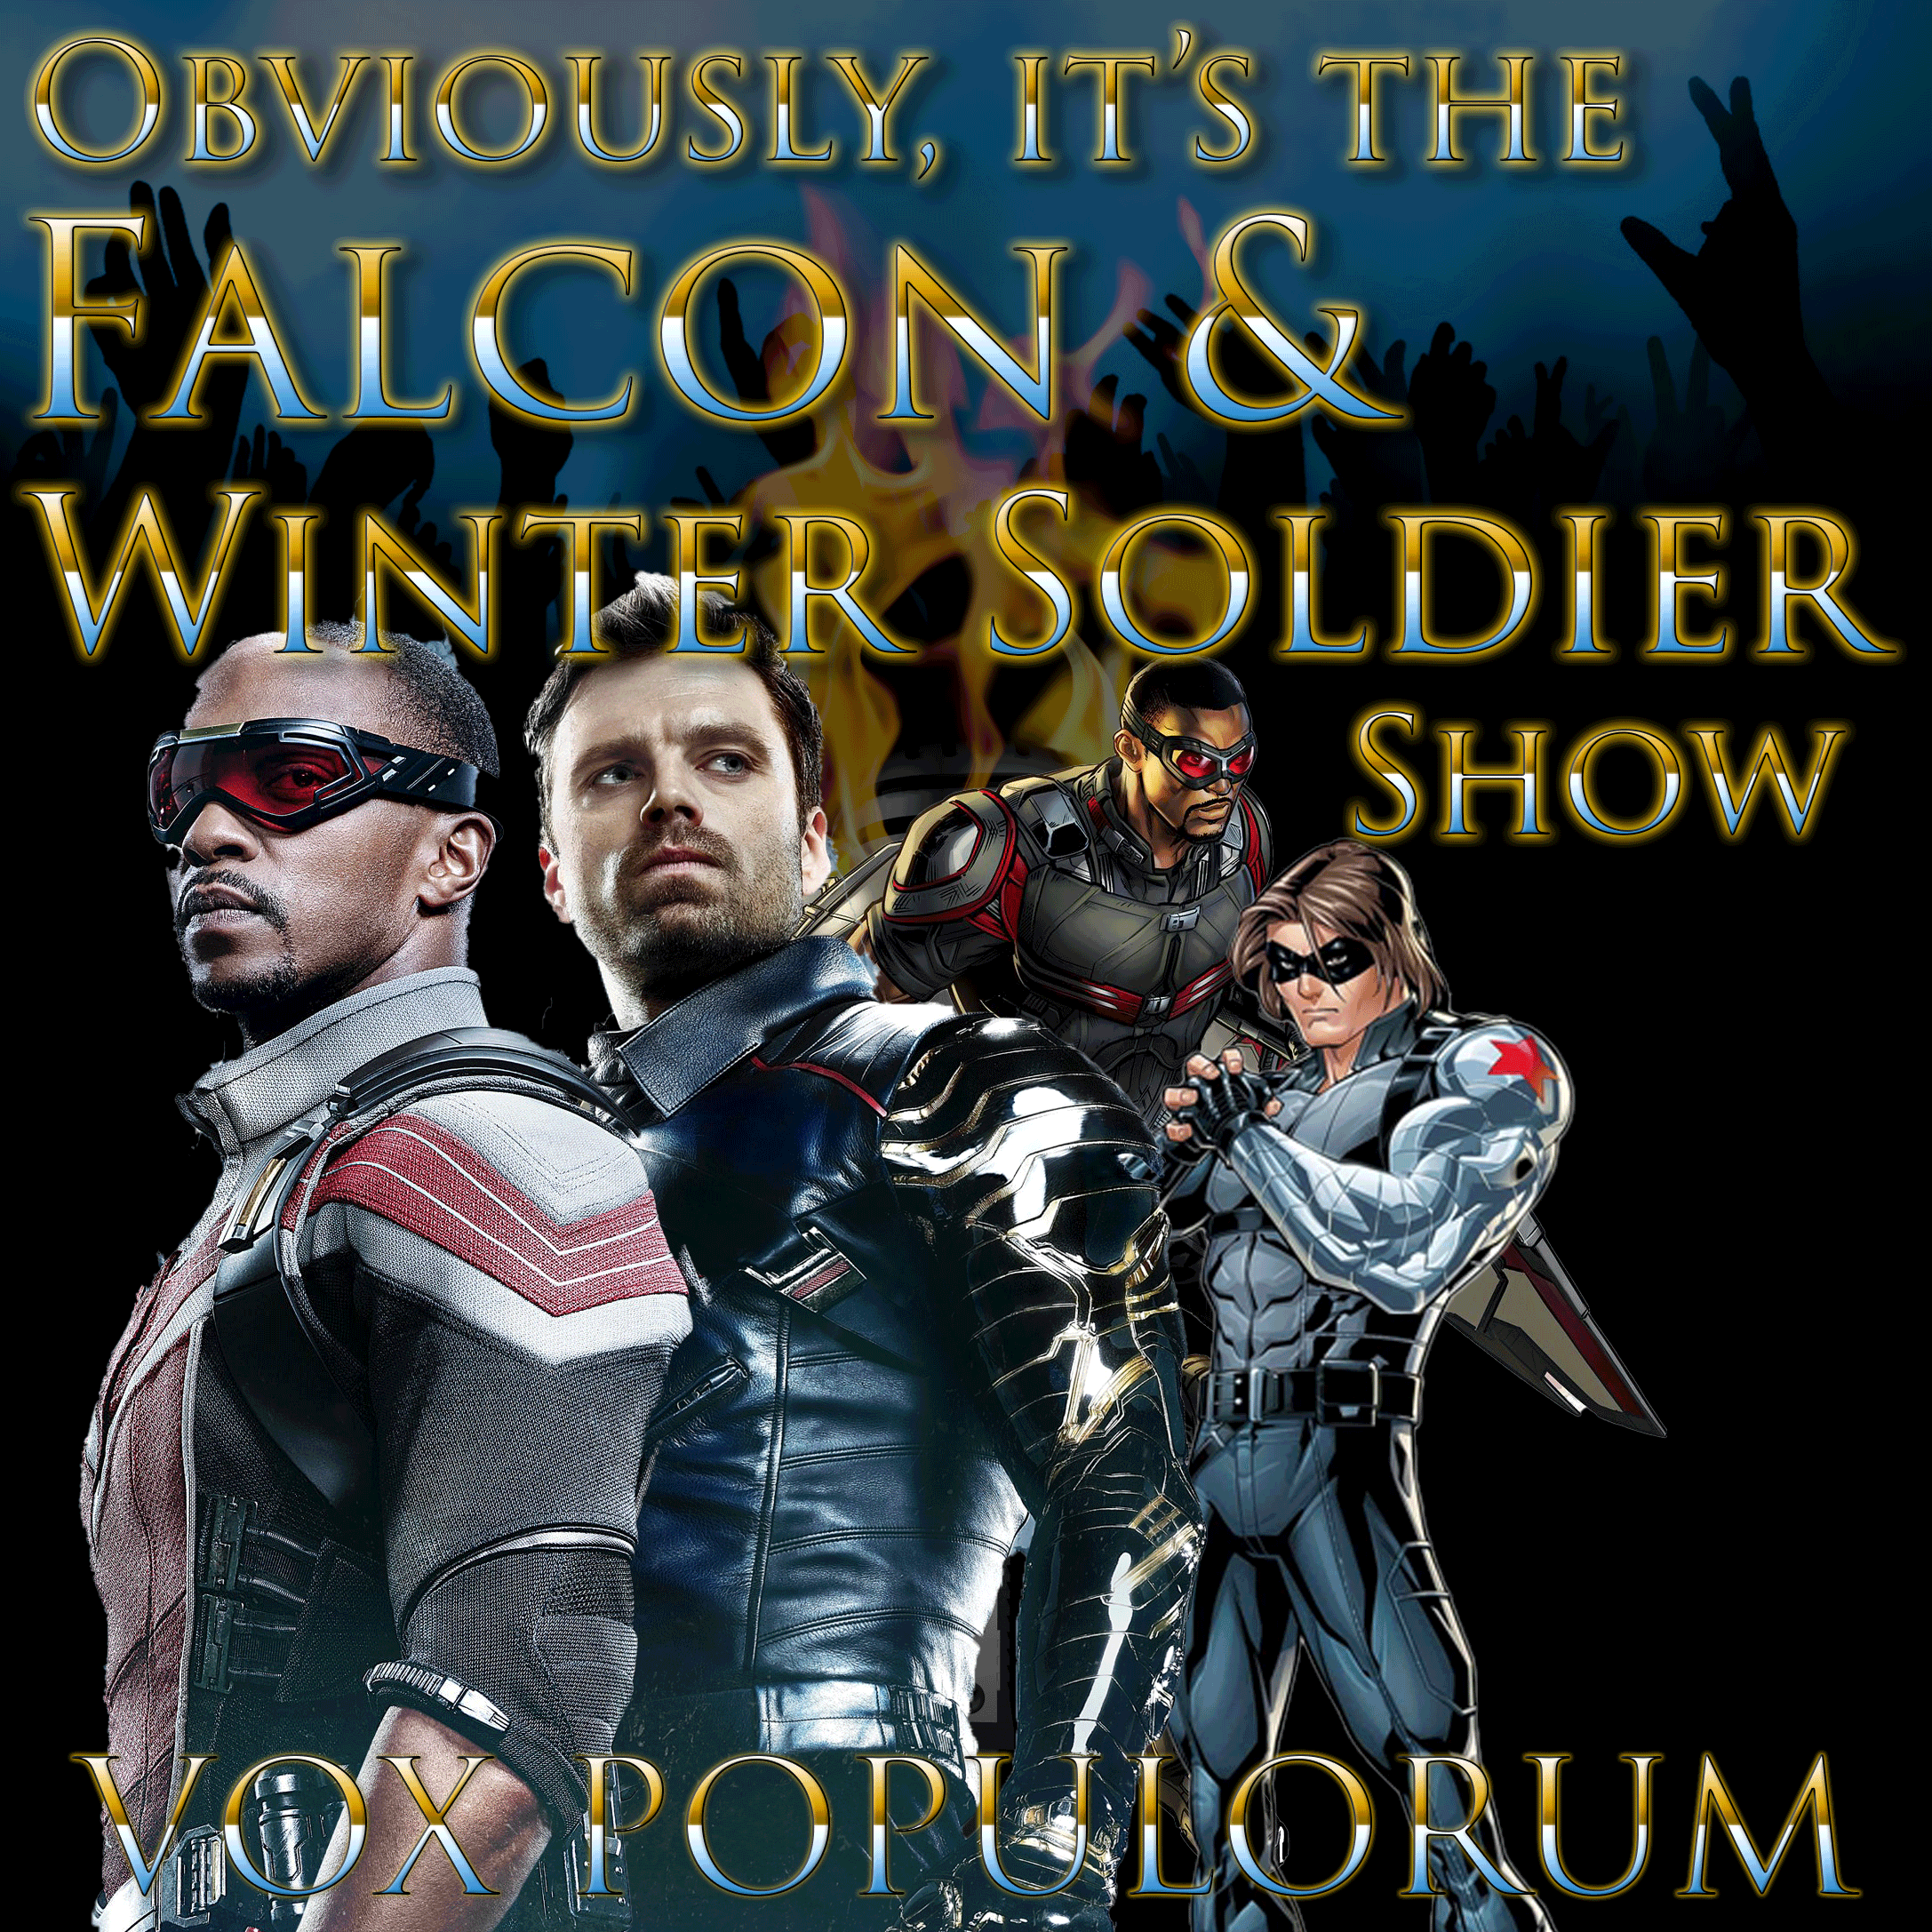 e159. Obviously, it's the Falcon and the Winter Soldier Show